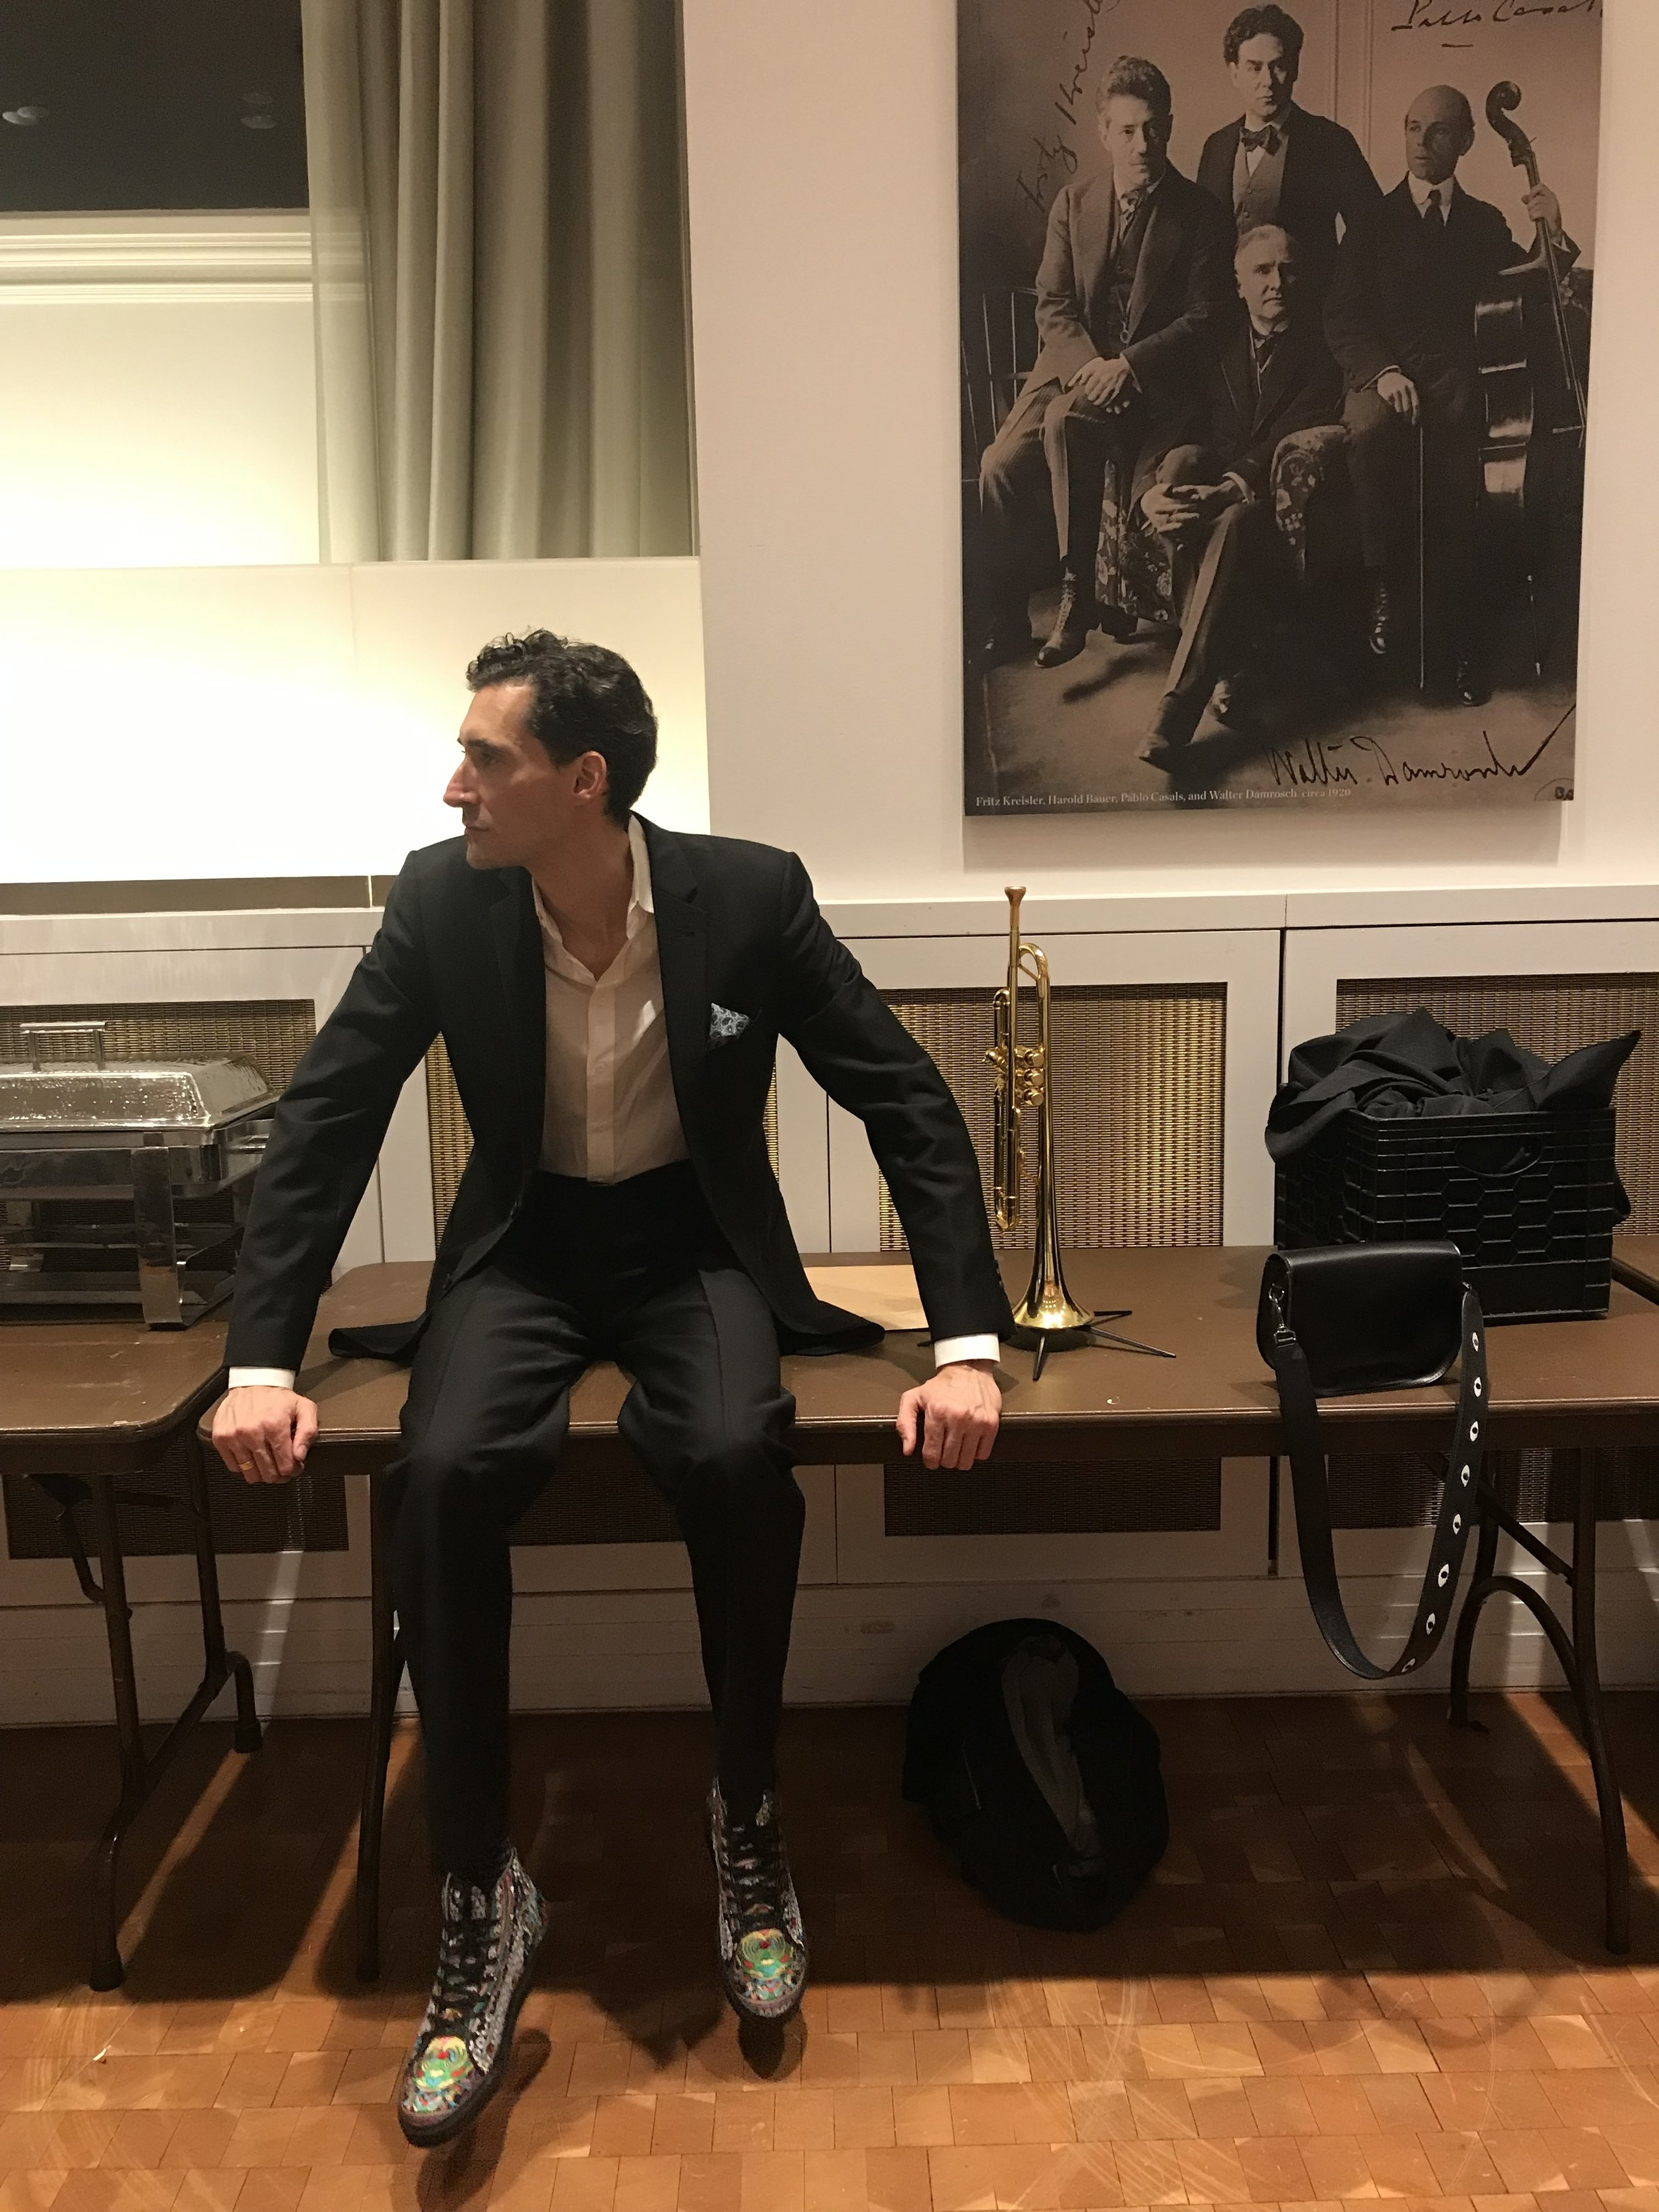 Jordan in a quiet backstage moment (and the Silver Cat high tops!) before playing the Van Morrison tribute at Carnegie hall. March 2019.